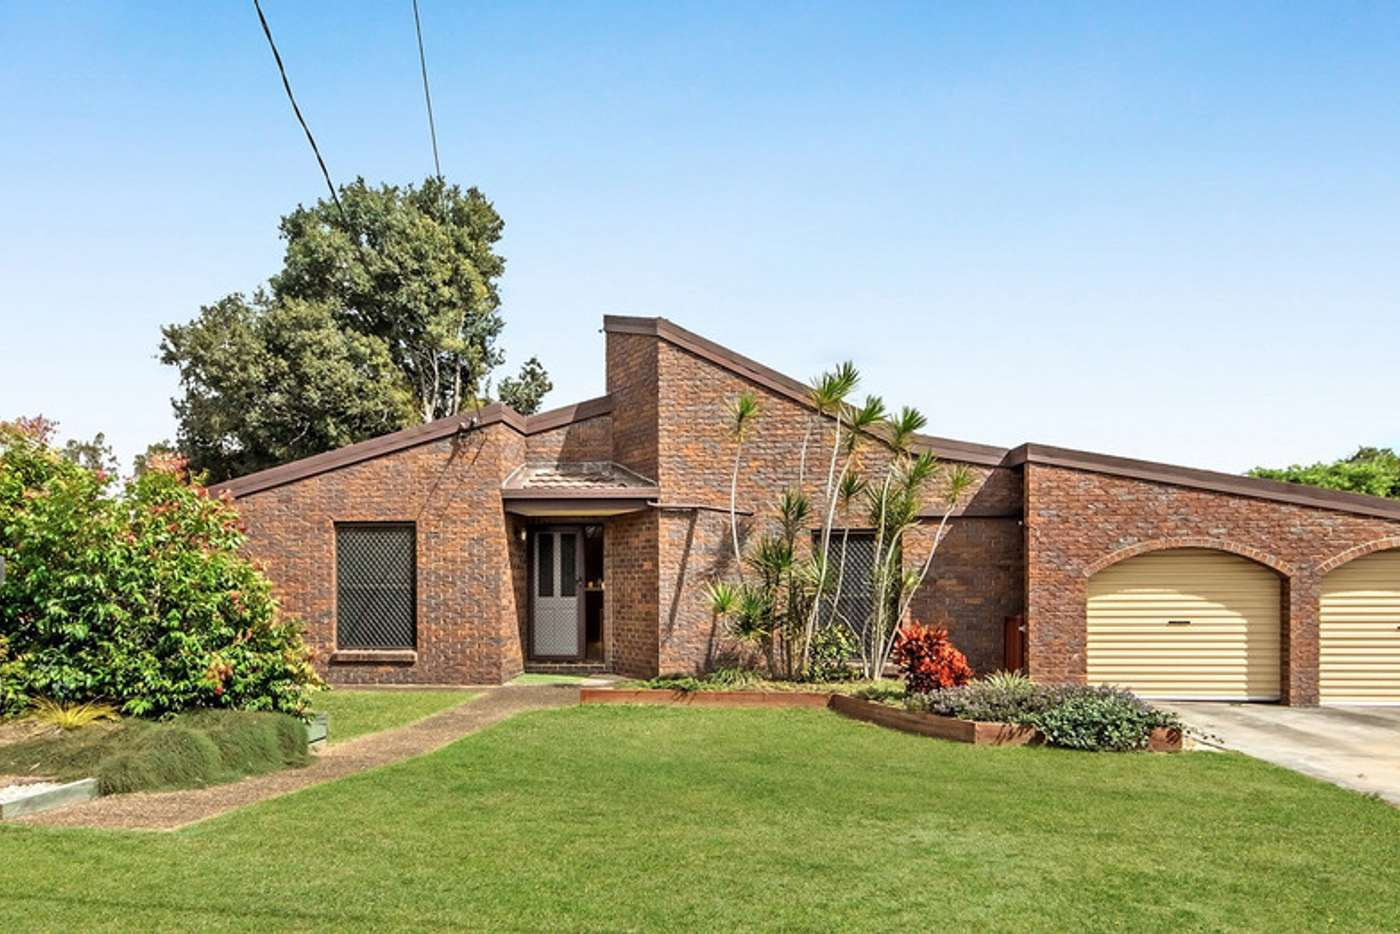 Main view of Homely house listing, 67 Wildey Street, Raceview QLD 4305